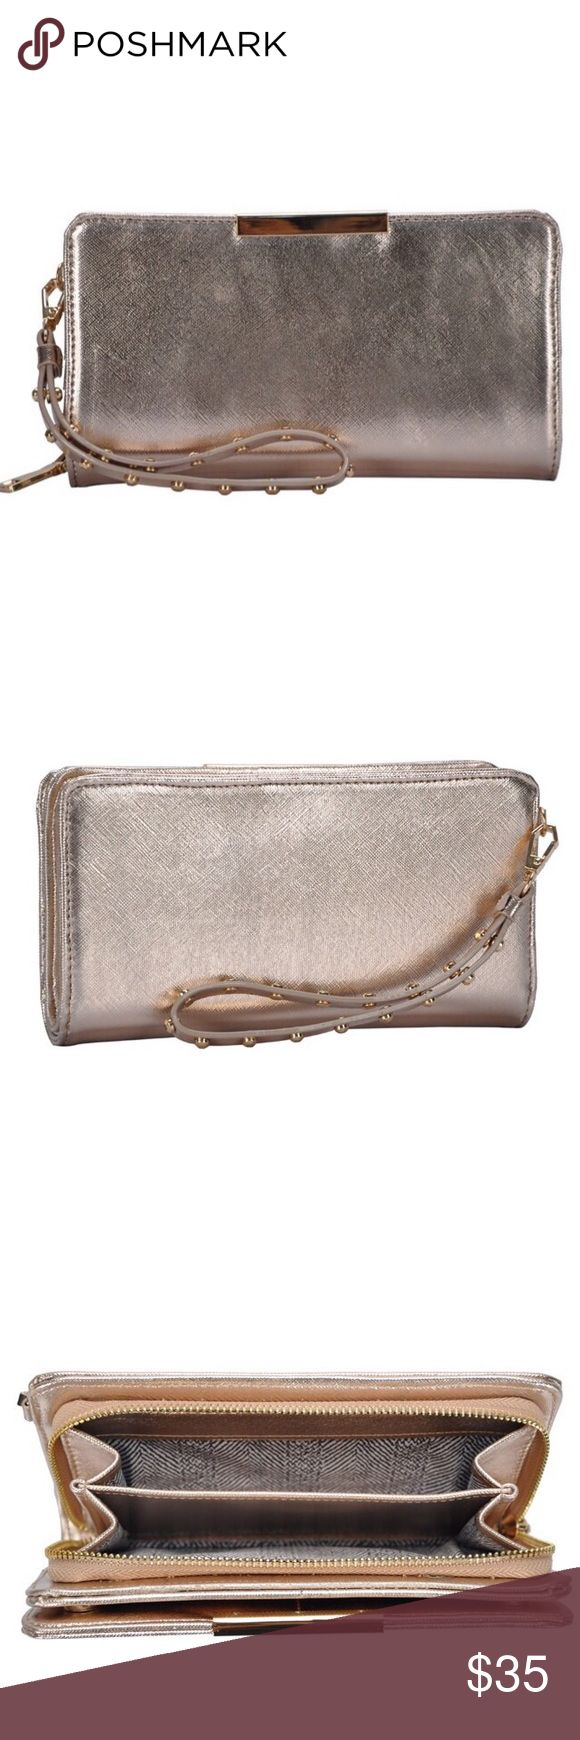 """Rose Gold Metallic Riveted Wallet DESCRIPTION  Look to MMS Trading to add a feminine touch to your look. The Rivvet Wallet comes with plenty of pockets to keep cash secure and a removable wrist strap for versatile carrying.  Item # 418718 UPC # 450002662216 FEATURES  Faux leather Top zip closure Removable 6½"""" wrist strap Interior Pockets: 3 paper accordian, 2 paper money slips, 1 zip & 8 card slots Fabric lining 8"""" L x 1"""" W x 4½"""" H MMS Design Studio Bags Wallets"""